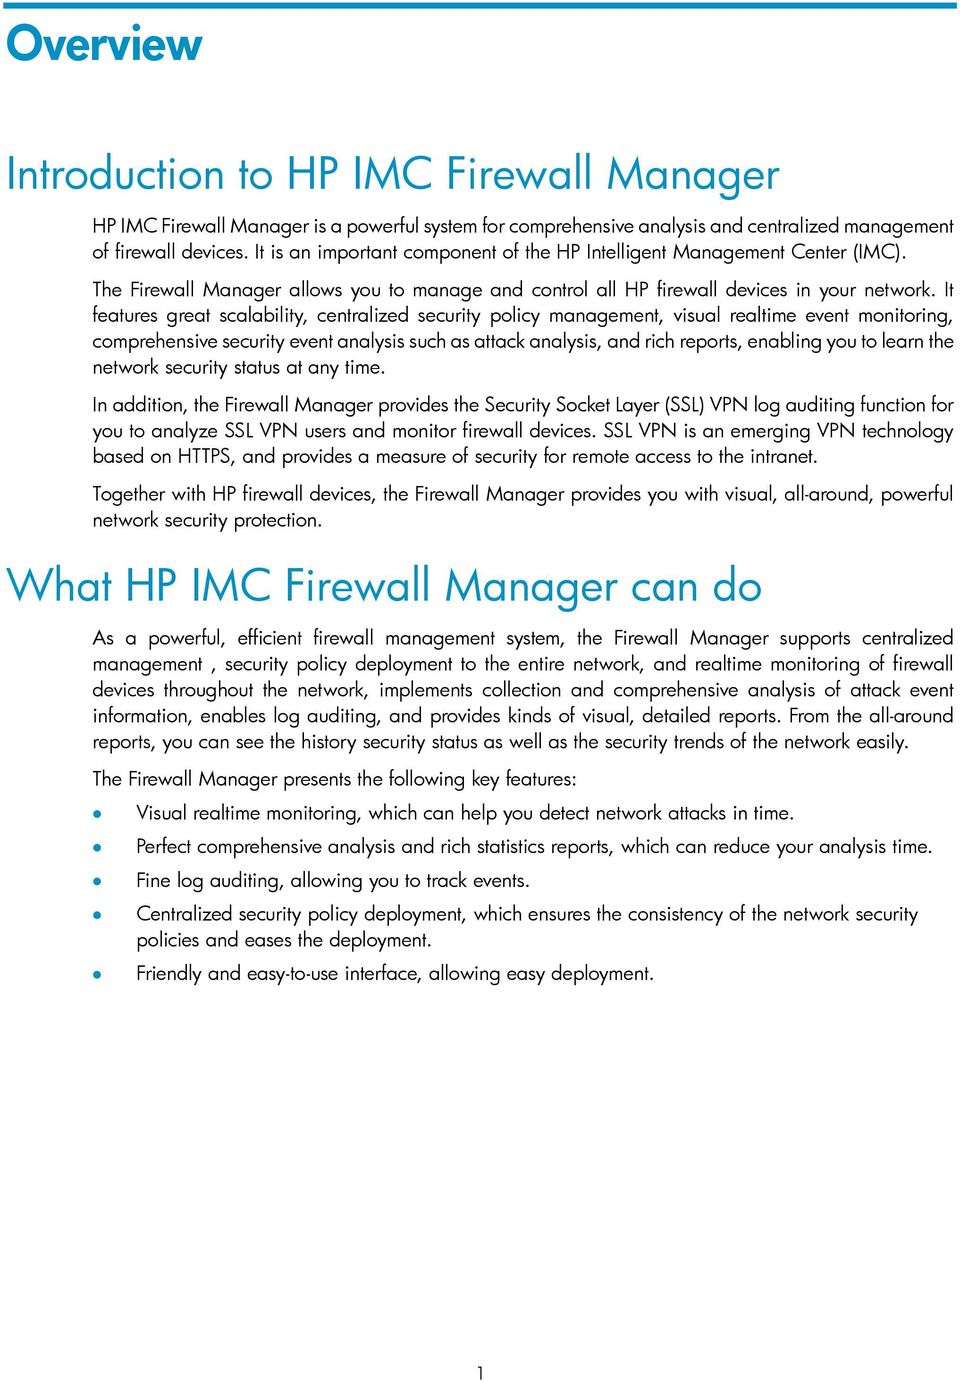 HP IMC Firewall Manager - PDF